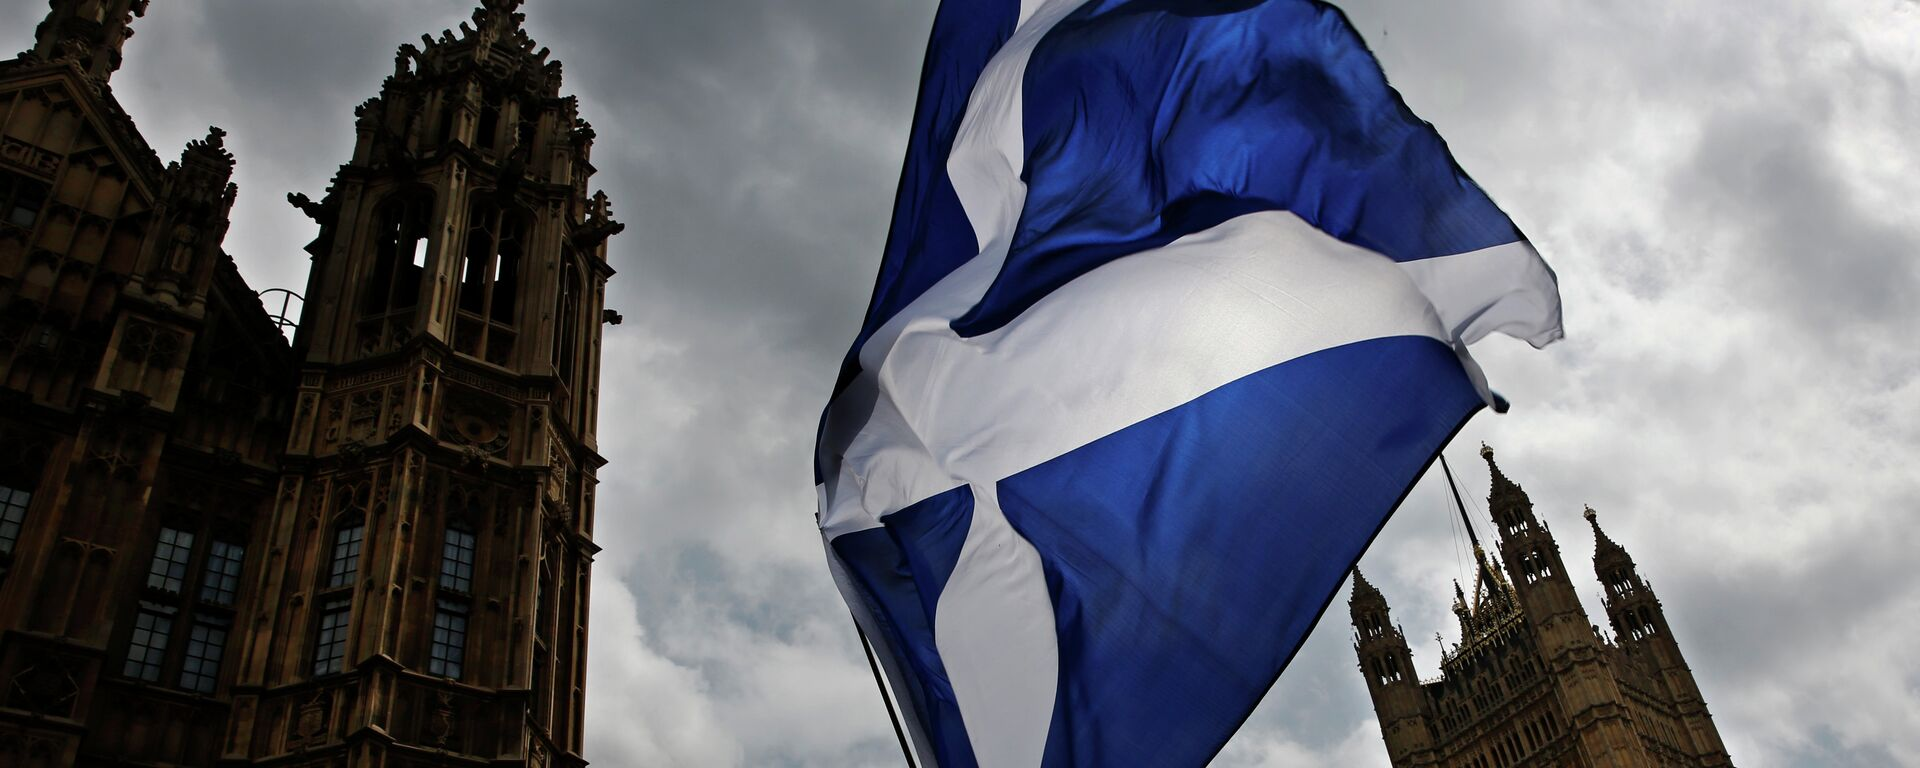 A member of public flies a giant Scottish Saltire flag outside the Houses of Parliament shortly before Scotland First Minister Nicola Sturgeon posed with newly-elected Scottish National Party (SNP) MPs during a photocall in London on May 11, 2015 - Sputnik Mundo, 1920, 30.03.2021